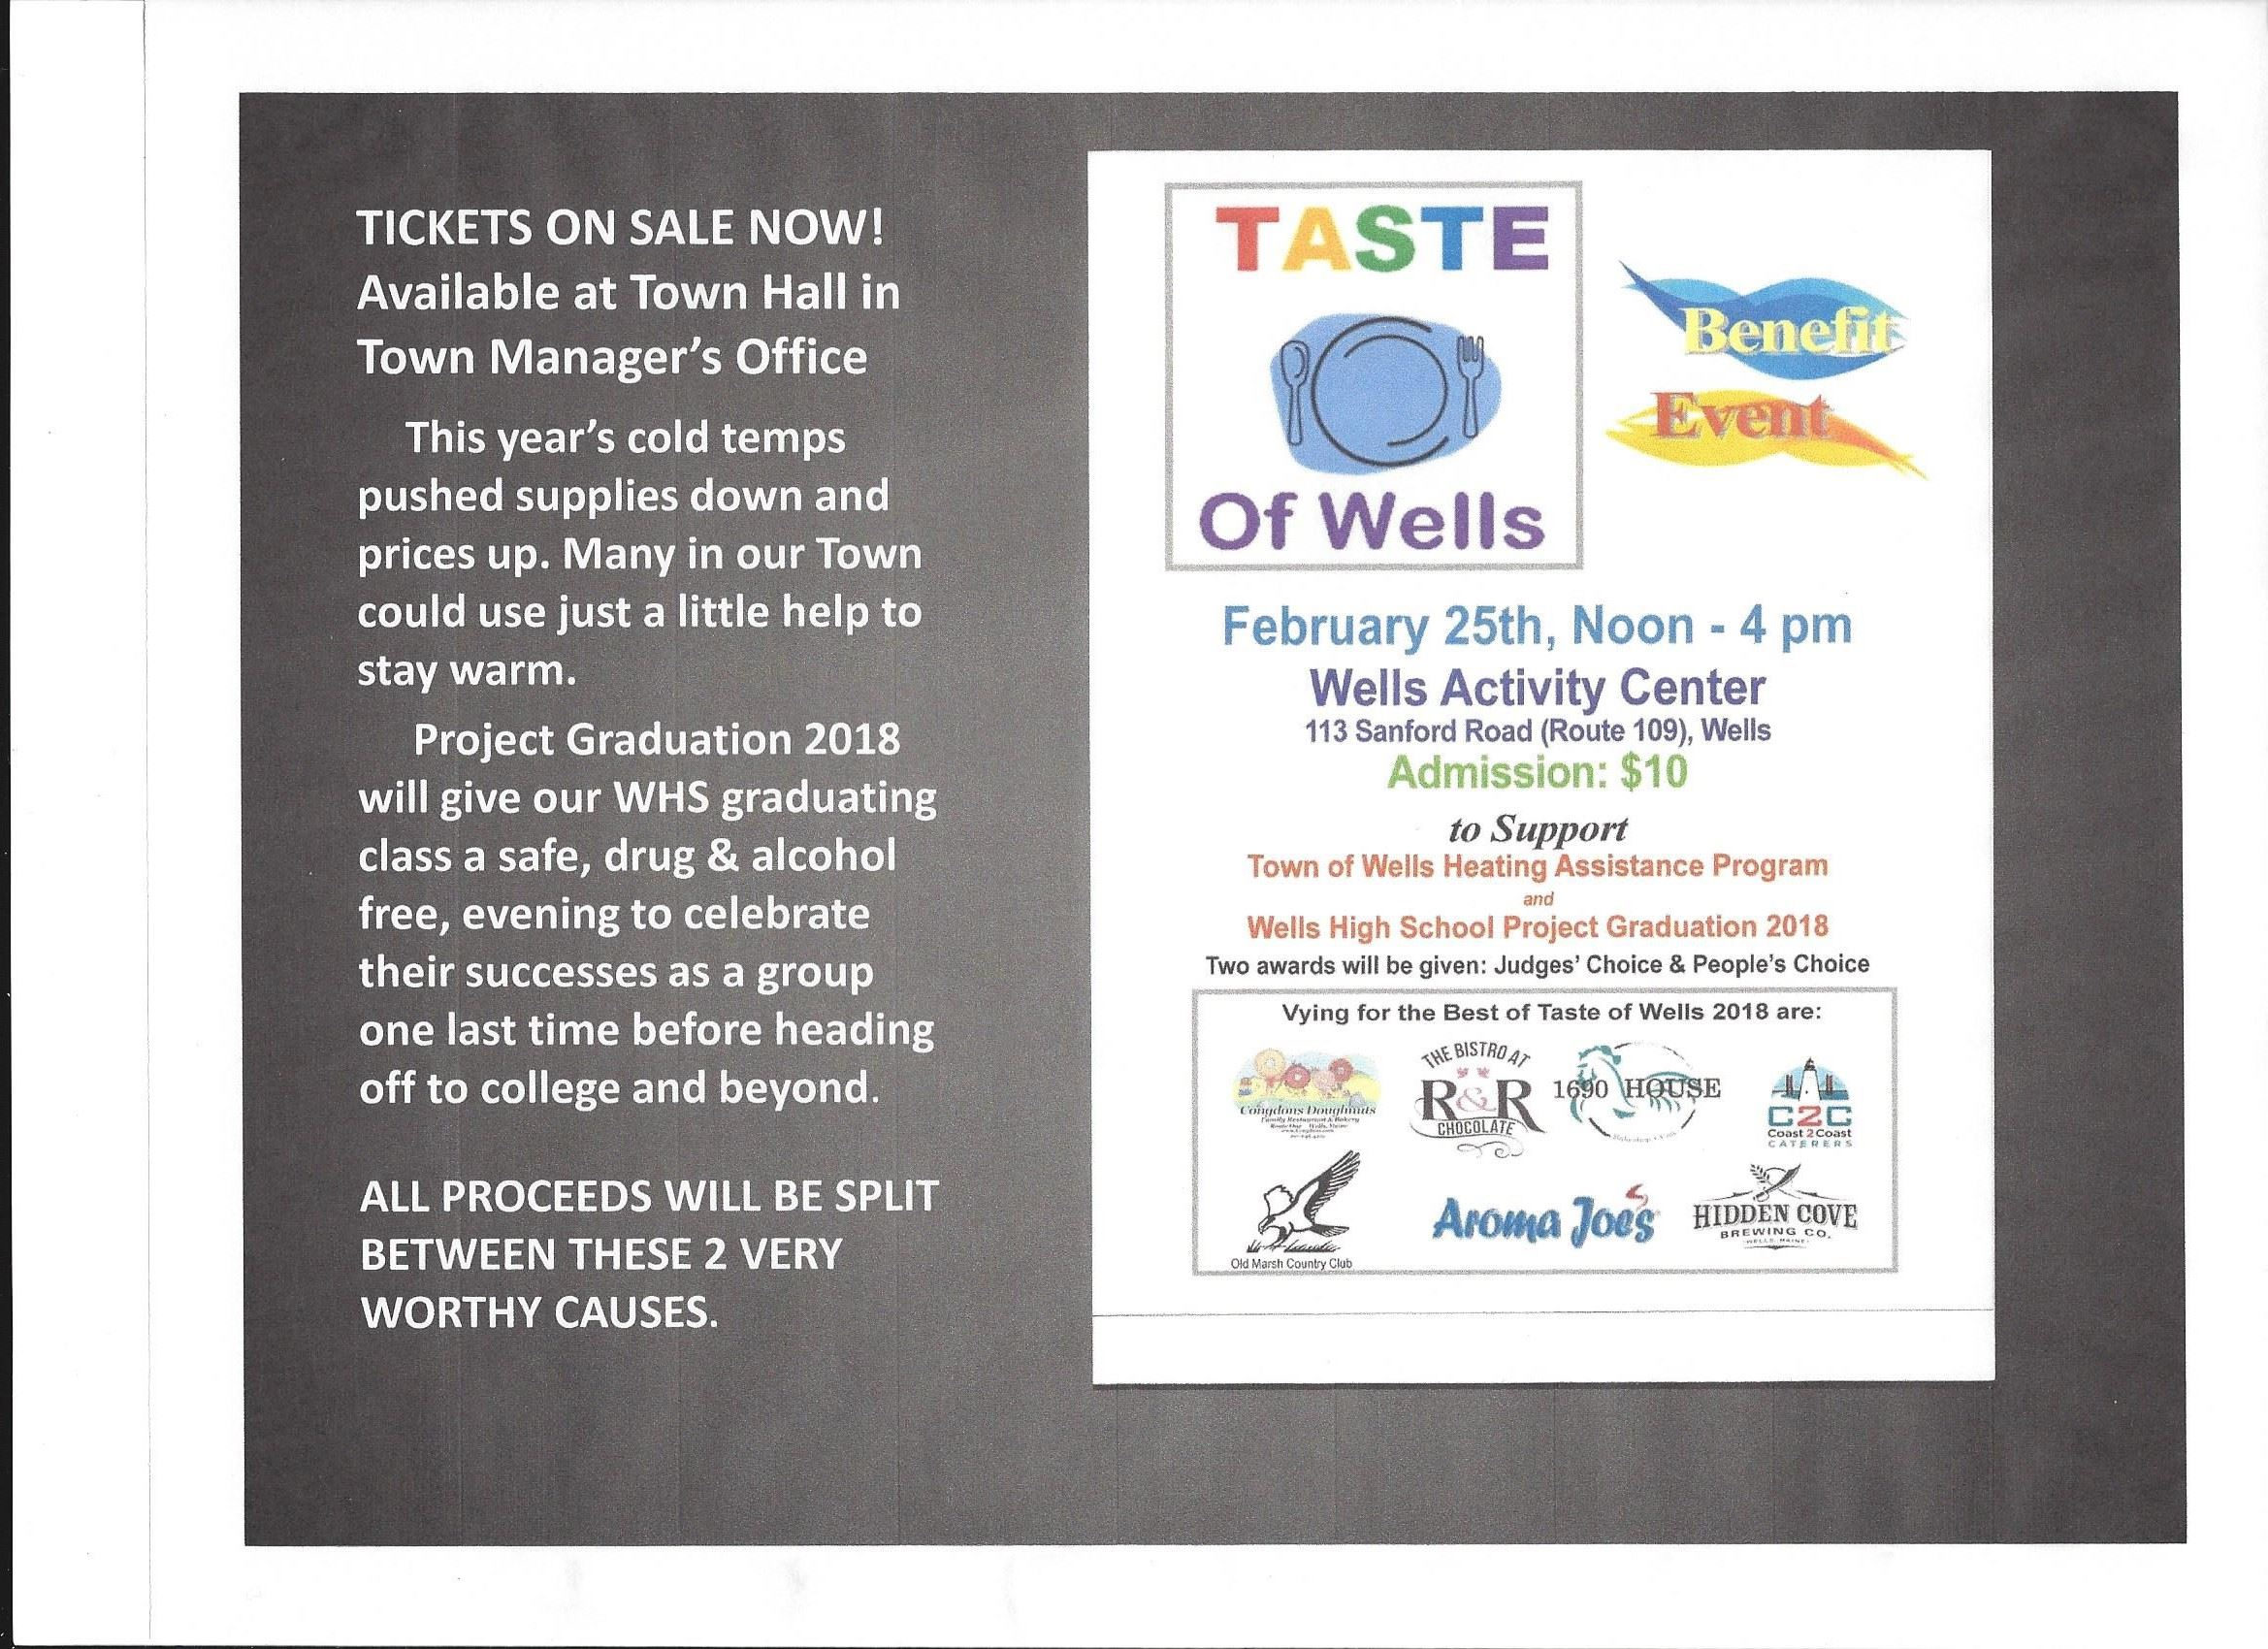 Taste of Wells - Tickets on Sale Now